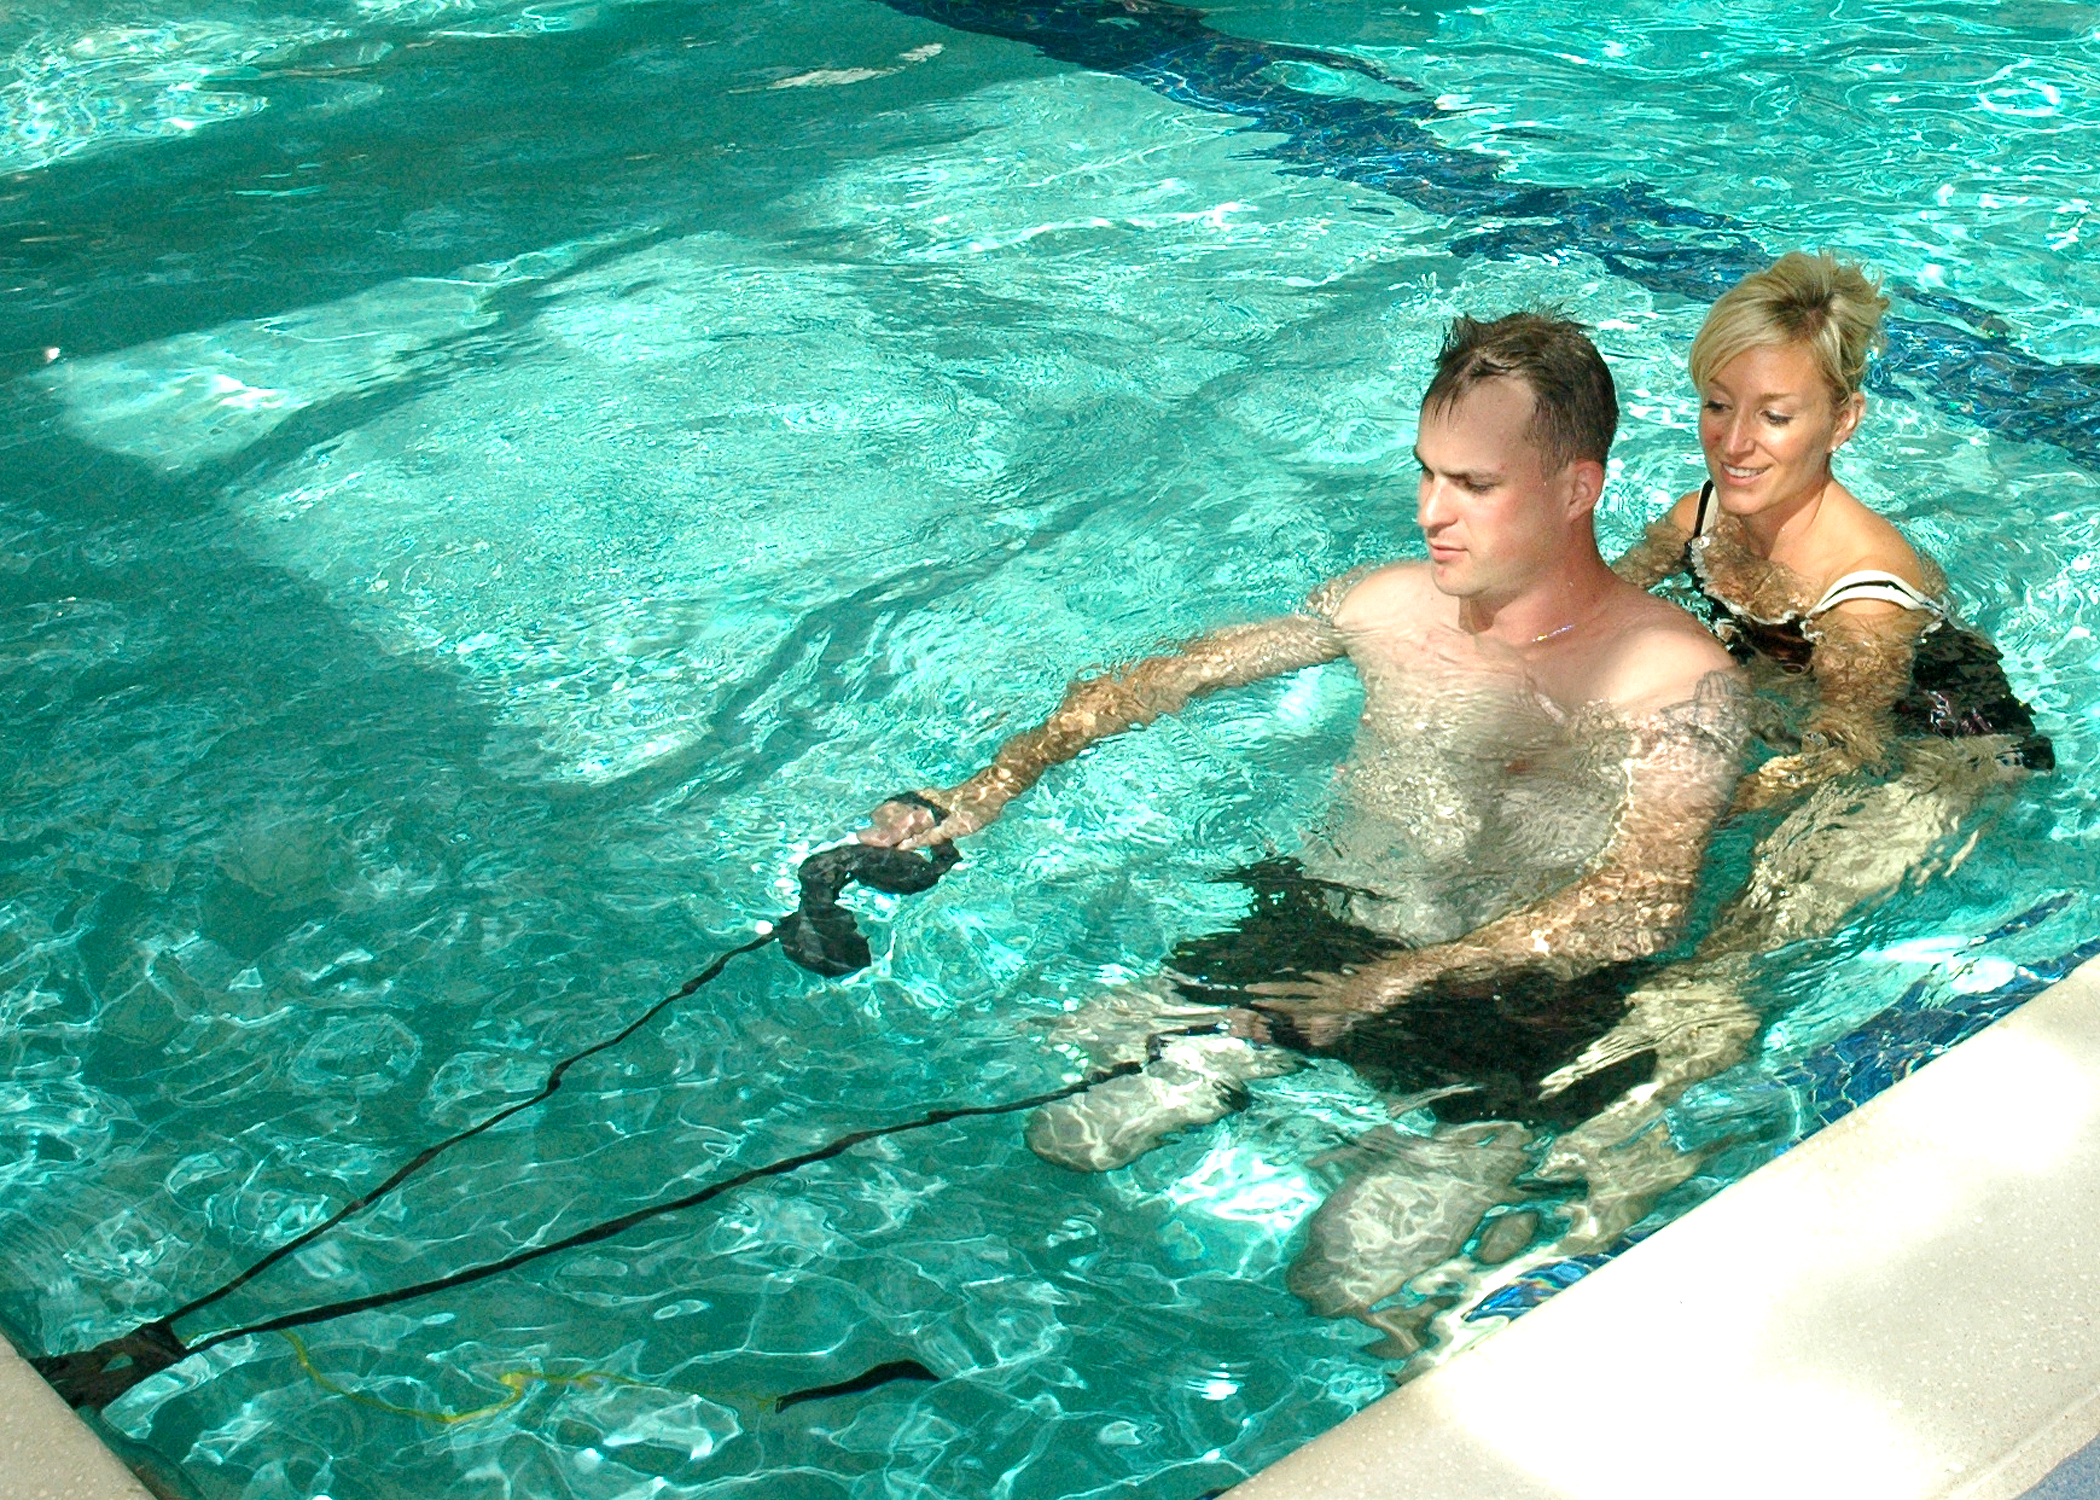 US Navy 091001-N-6326B-090 Lyn A. Boulanger, a Naval Medical Center San Diego occupational therapist, assists Marine Corps Staff Sgt. Jesse A. Cottle, a bilateral amputee, while he practices swimming during endurance training.jpg